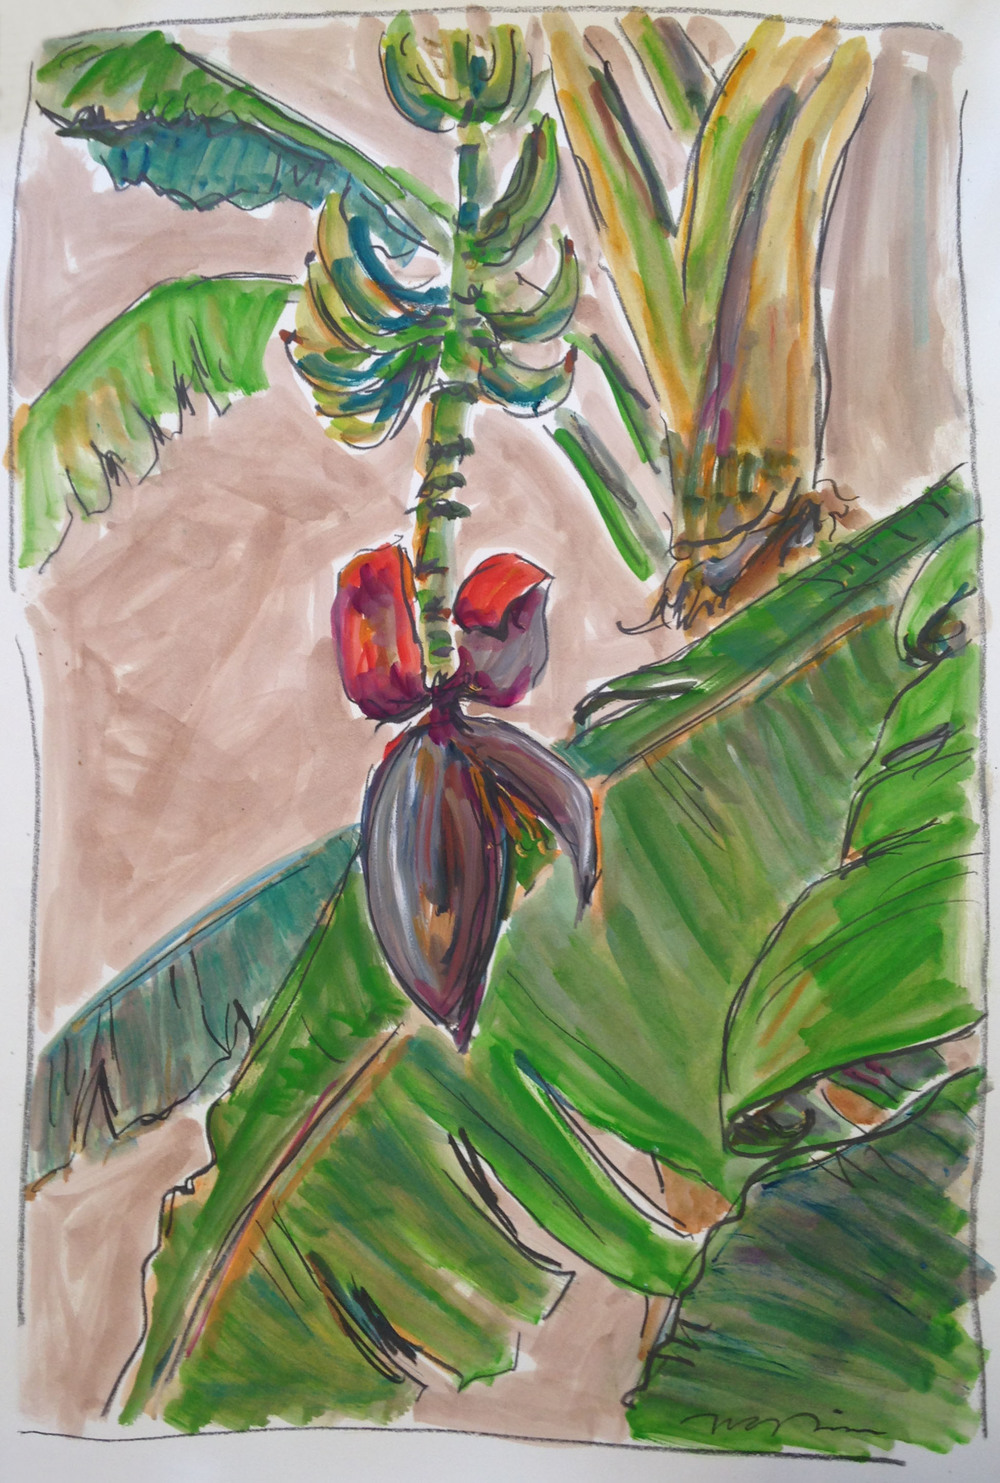 """Banana Flower"" by Tim Trapolin, graphite, oil, and oil wash on French paper, 30""X44"", value: $4,200 (Donated in honor of Louise Martin & Camille Strachan)"